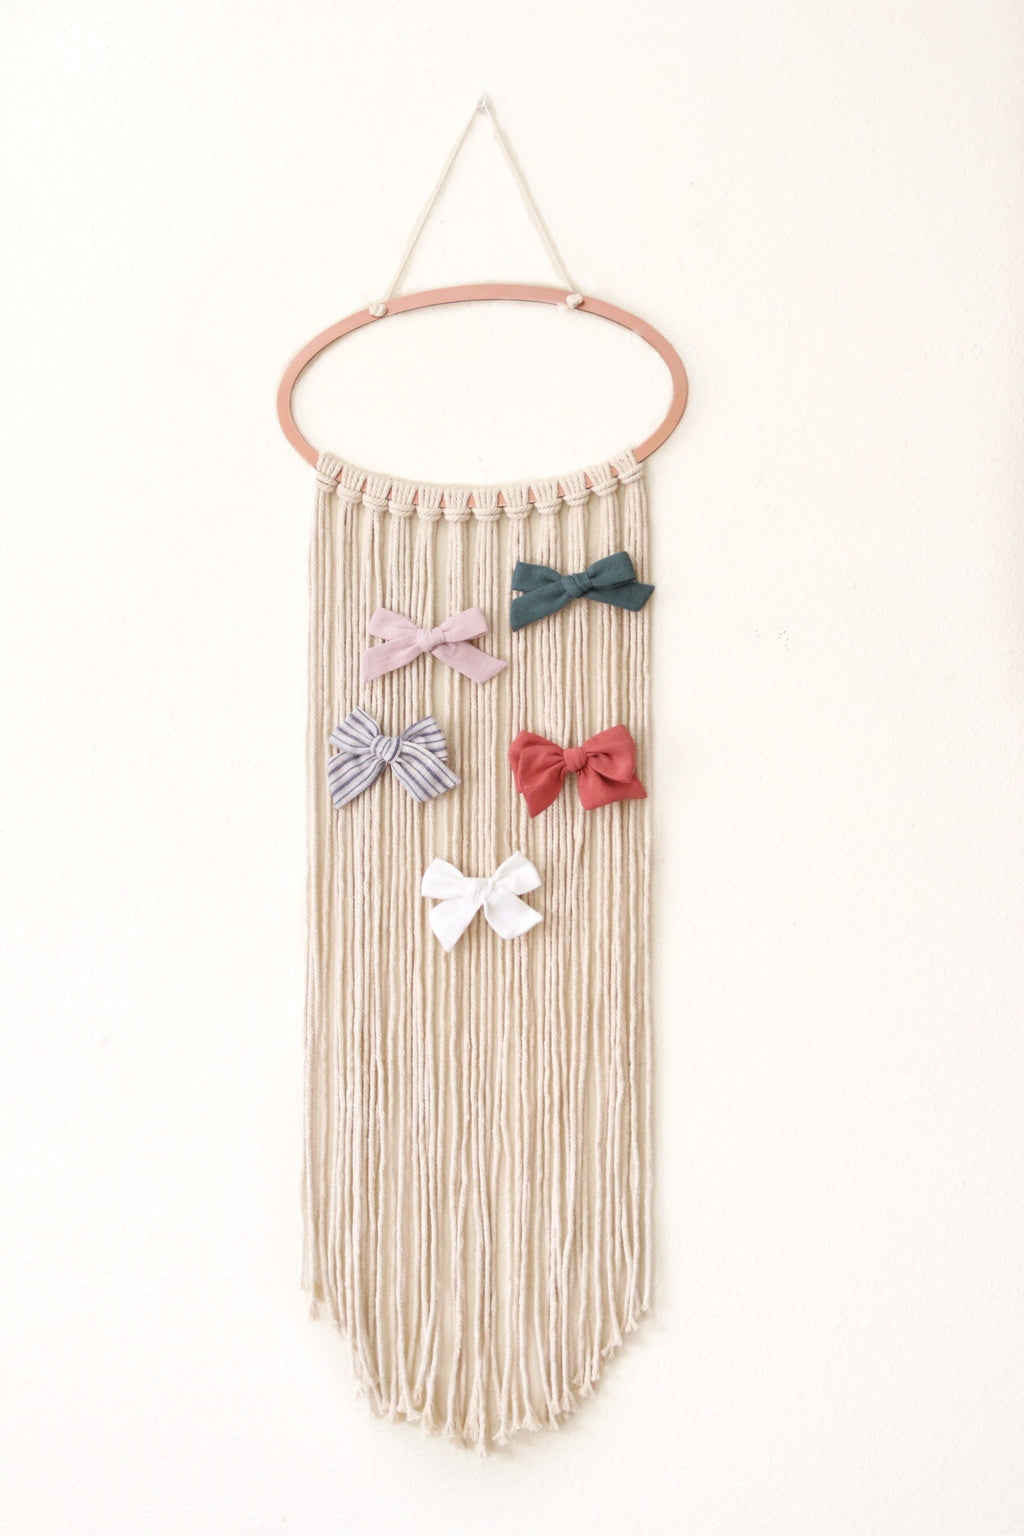 Macrame Bow Holder / Wall Hanging